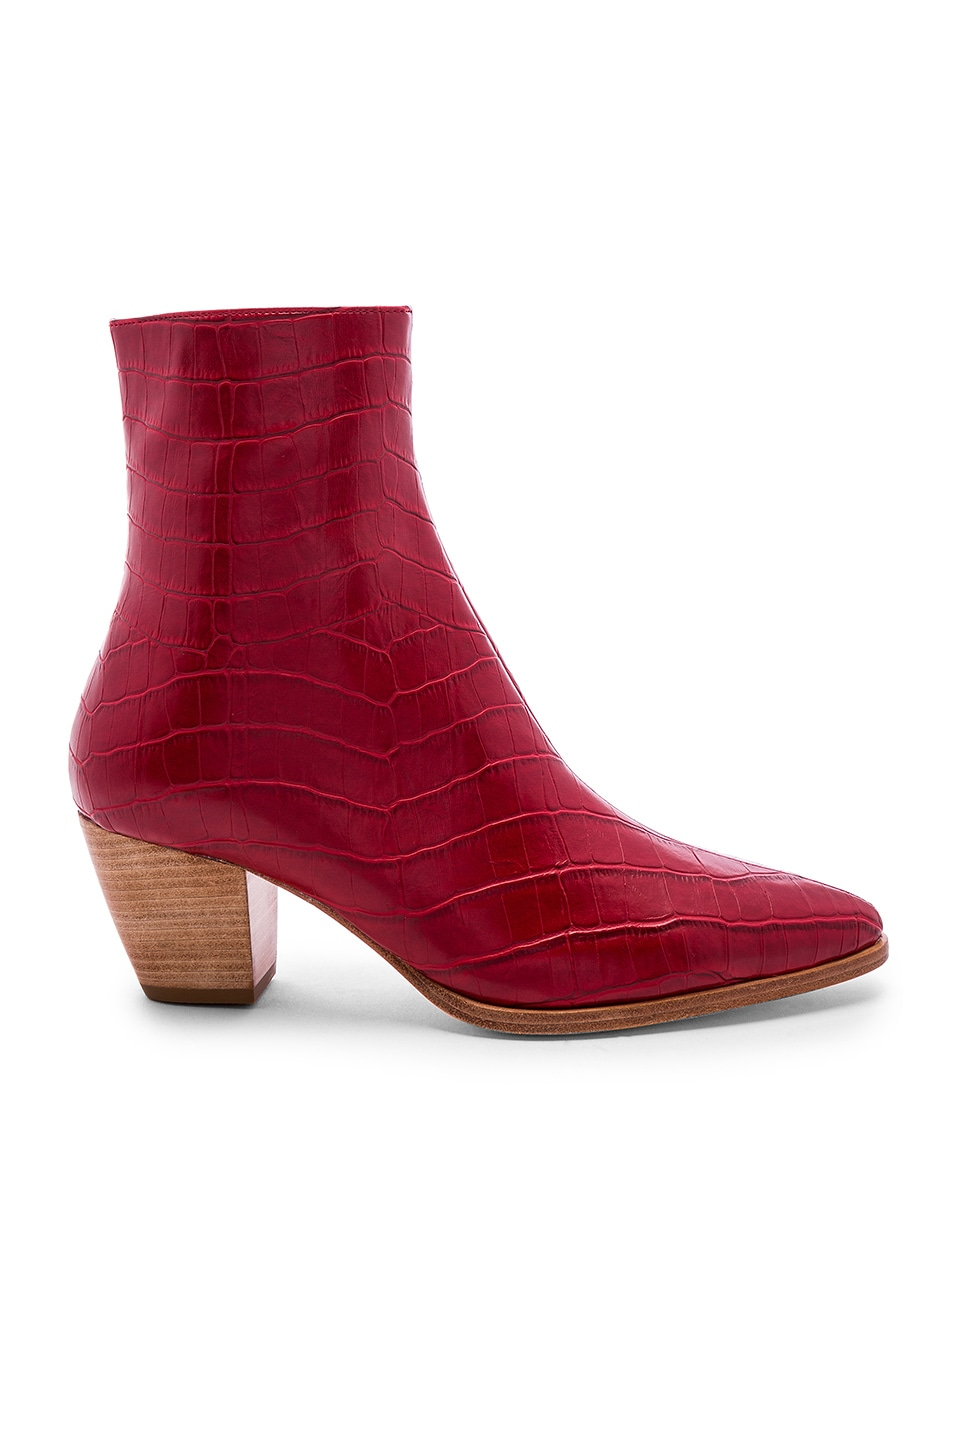 RAYE Landon Boot in Red